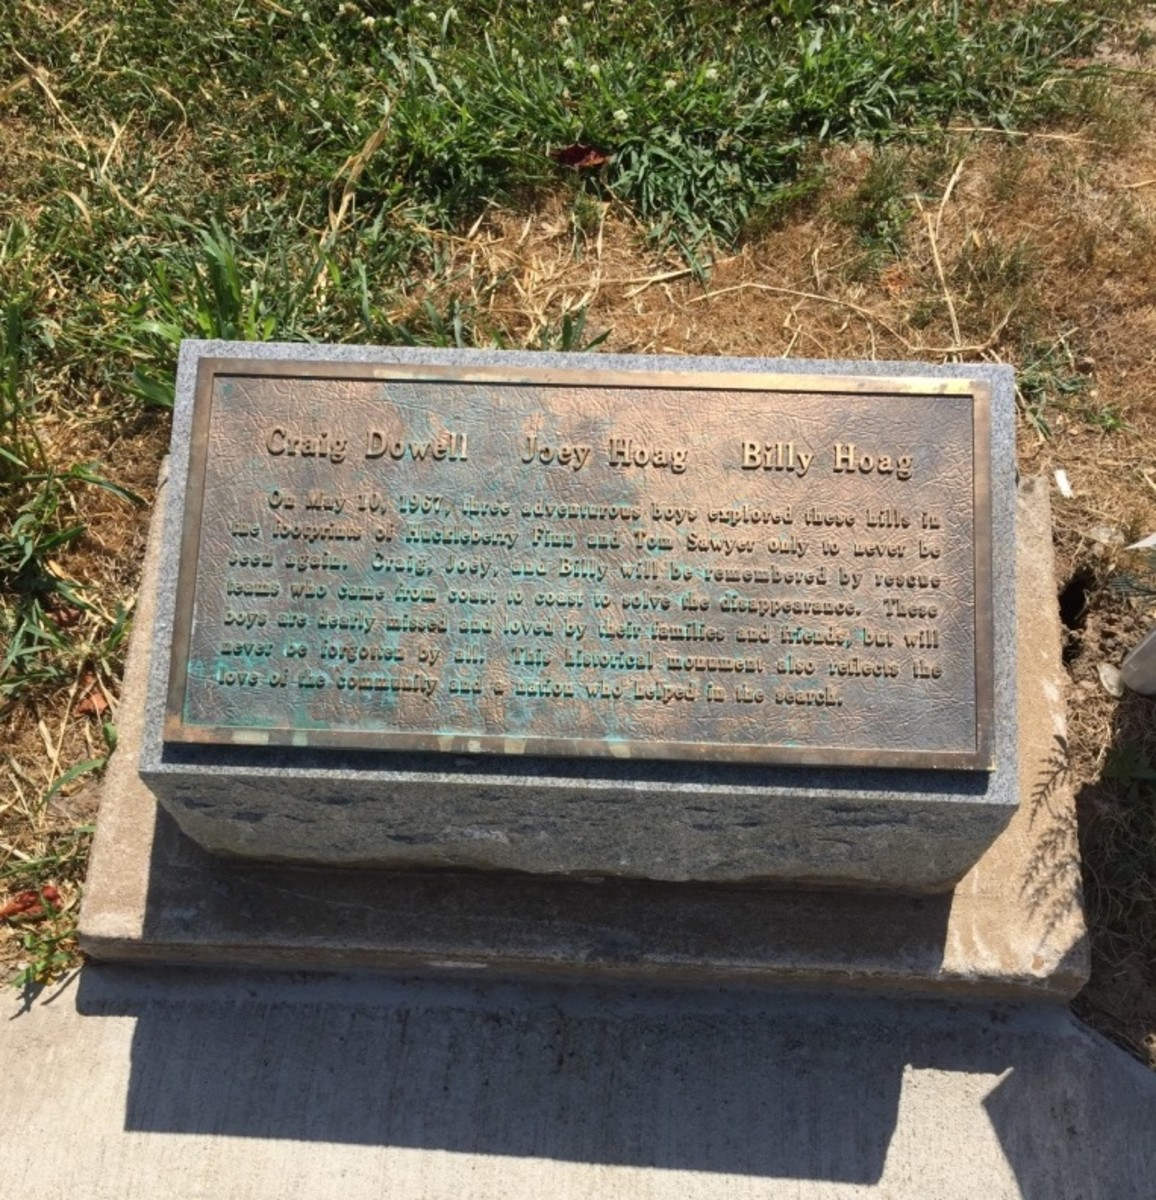 Memorial to the Lost Boys:  Craig Dowell, Joey Hoag, and Billy Hoag